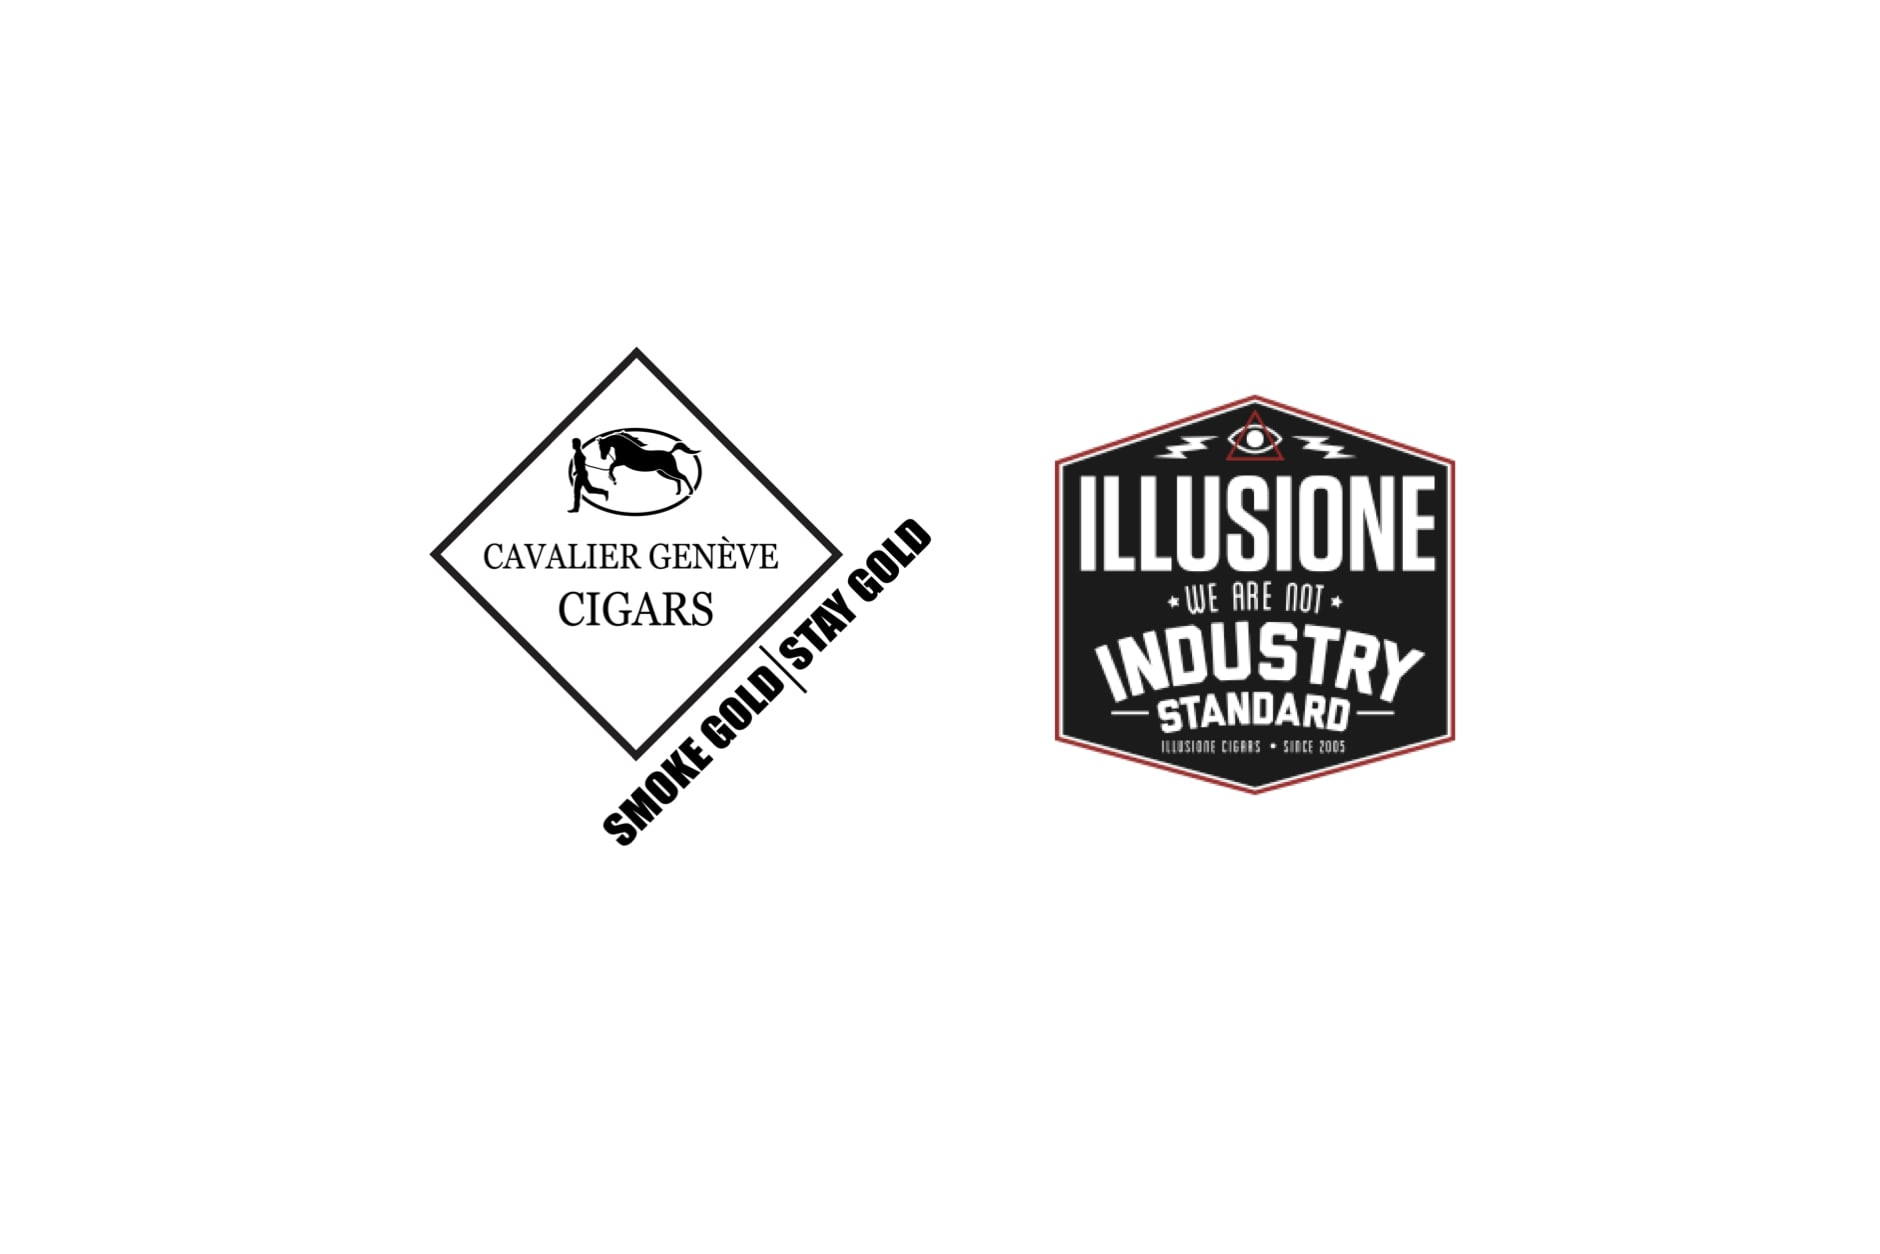 Illusione Takes Over Cavalier Genève Distribution Featured Image